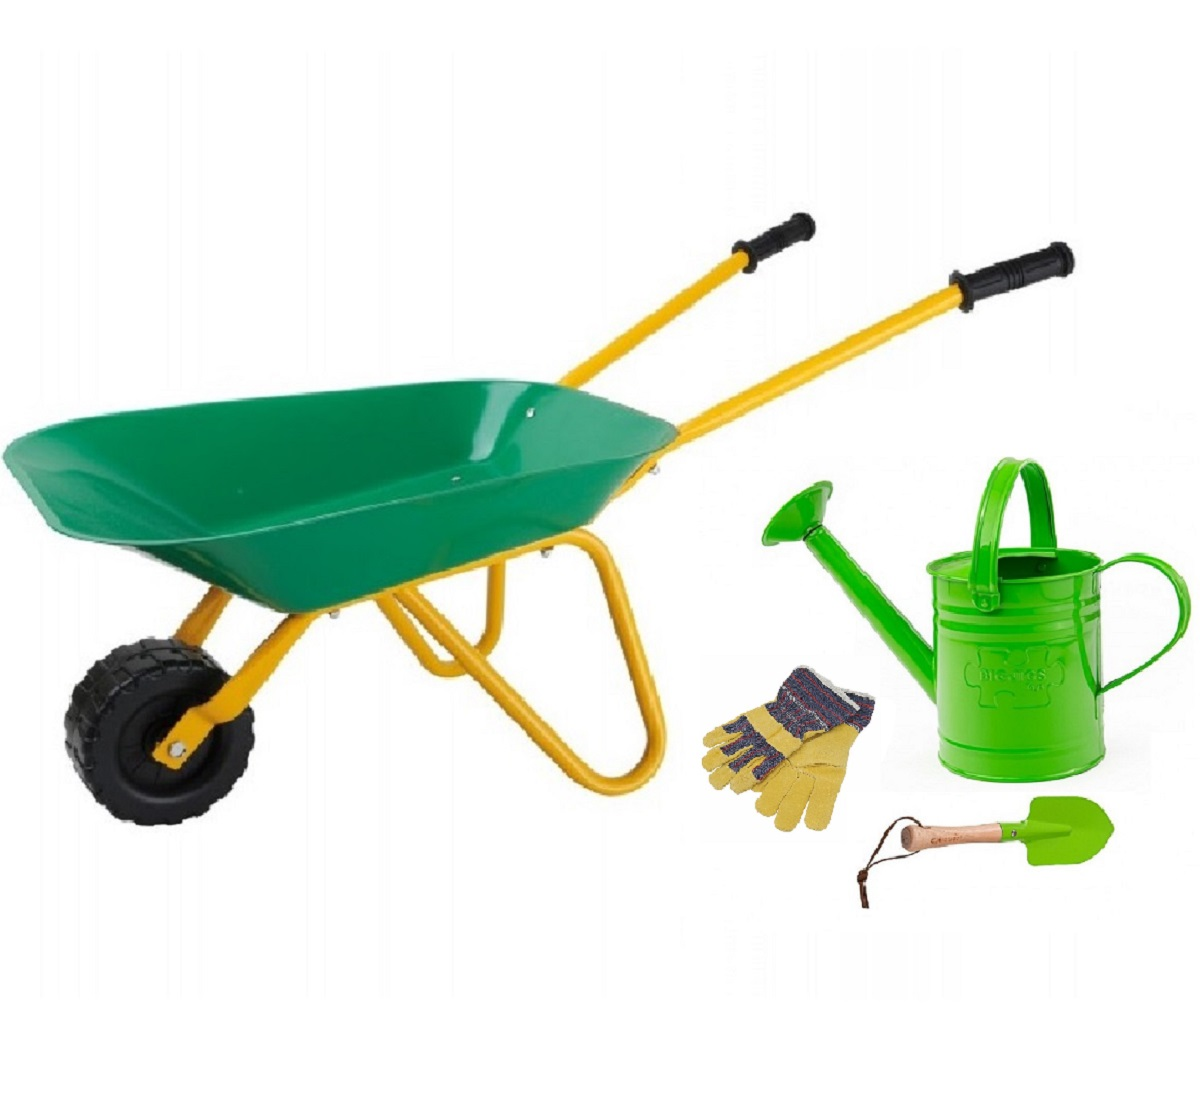 Children 39 s gardening tools watering can wheelbarrow set for Childrens gardening tools